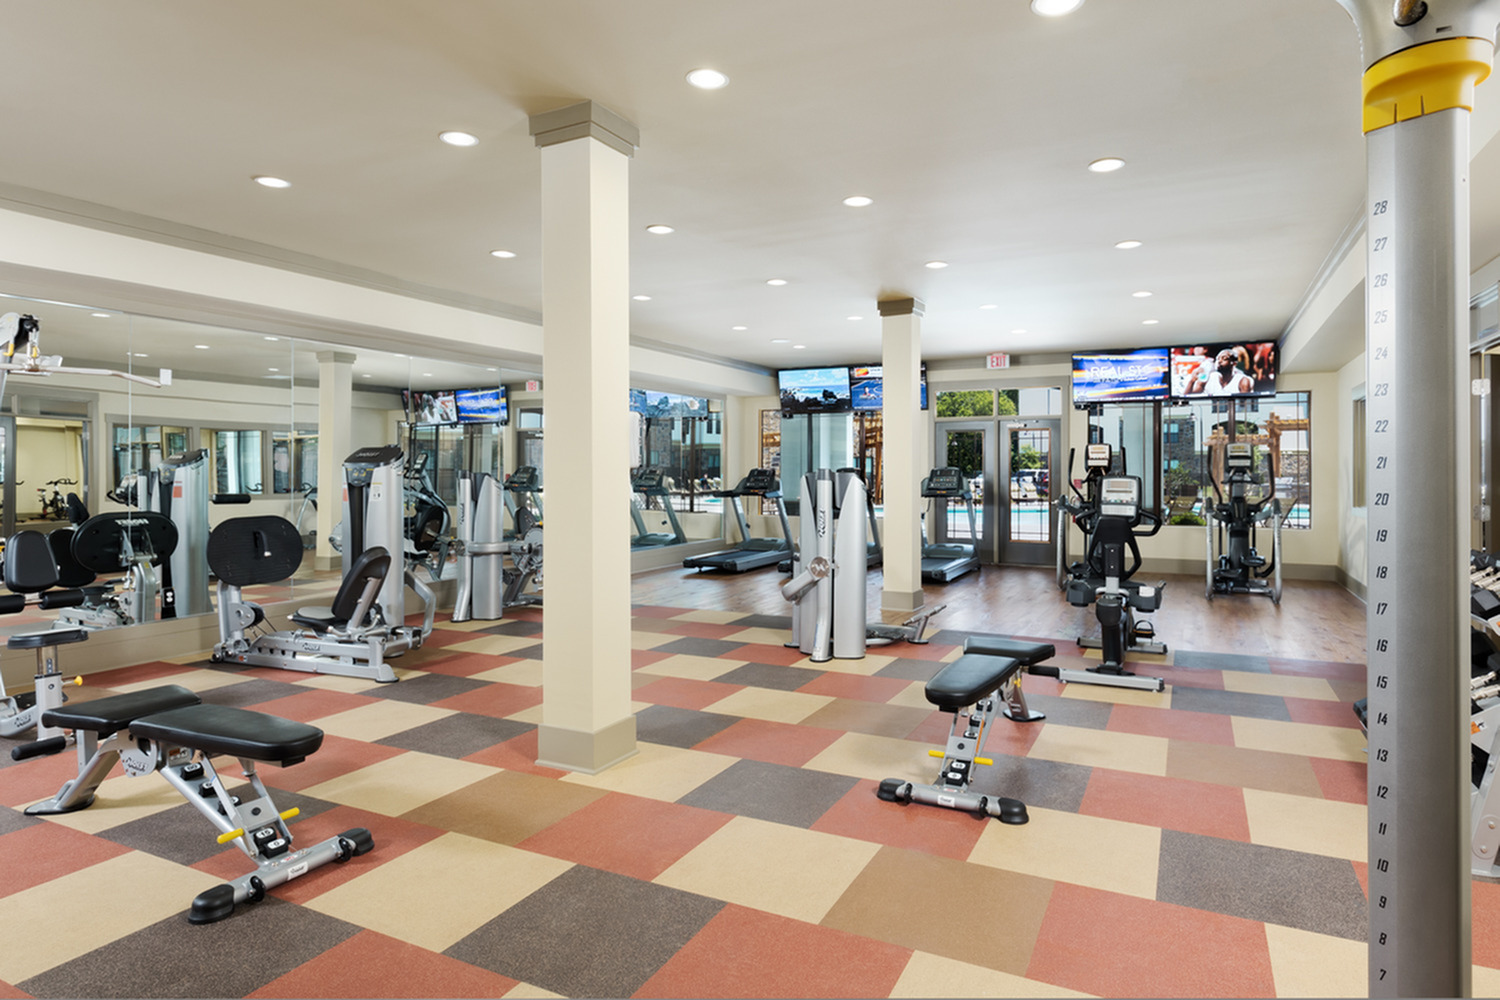 Image of 24-Hour State of the Art Fitness Center for 4700 Colonnade